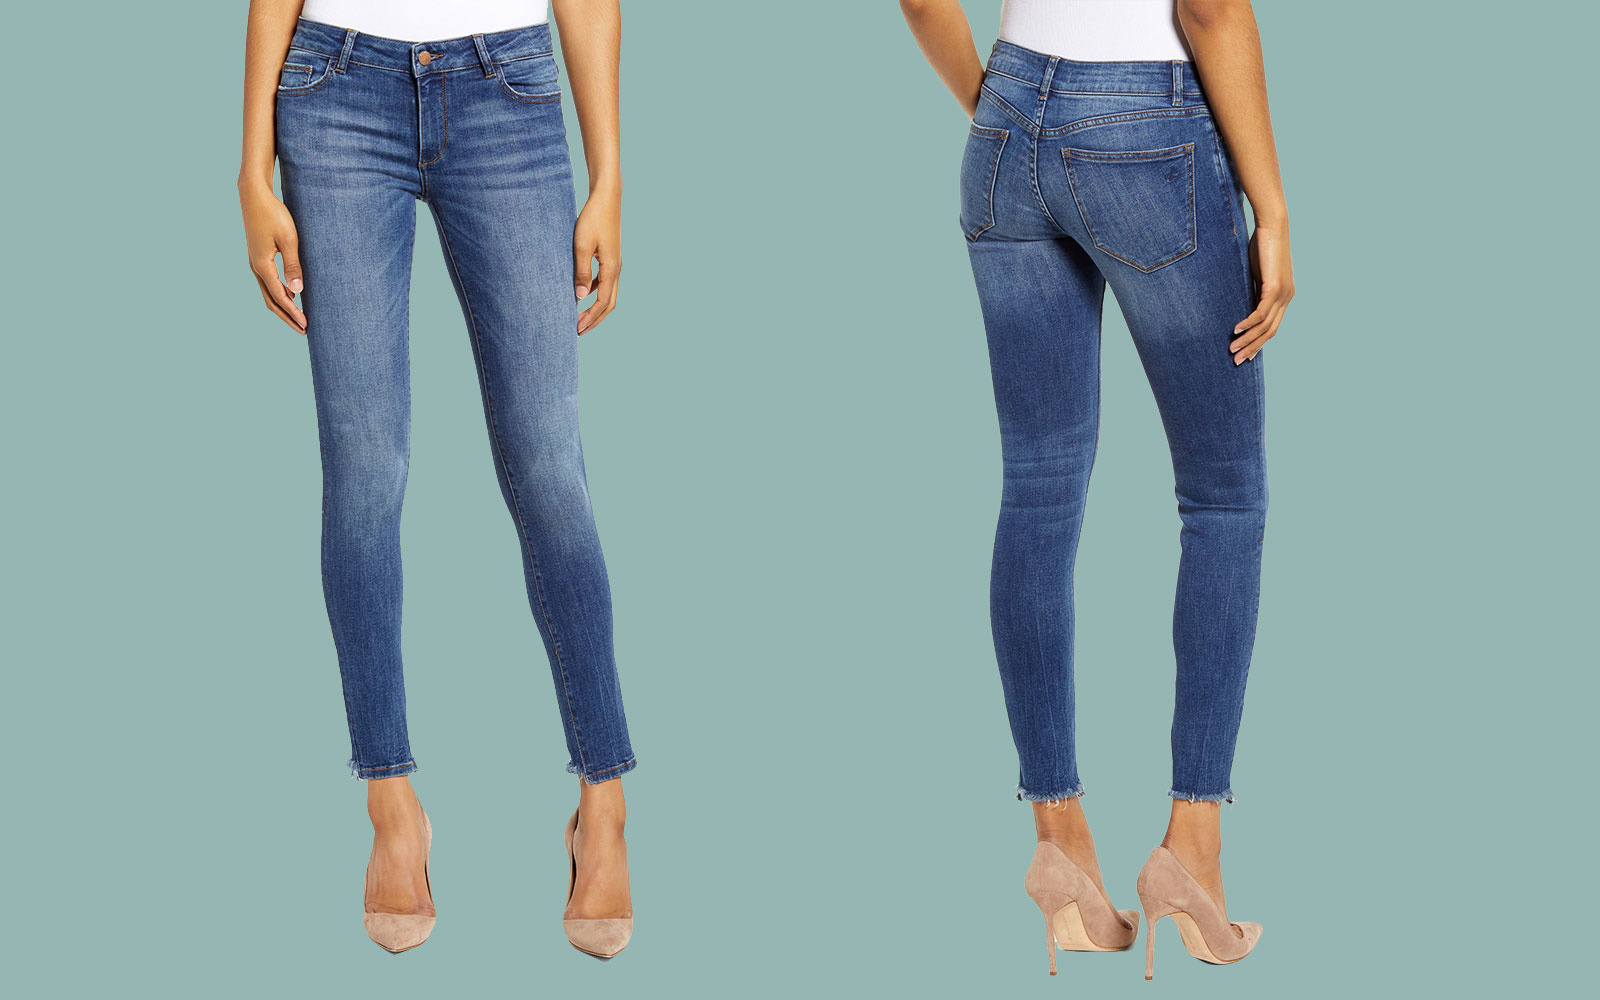 rivenditore all'ingrosso 12f69 11e15 These Comfortable Jeans Are As Stretchy As Leggings | Travel ...